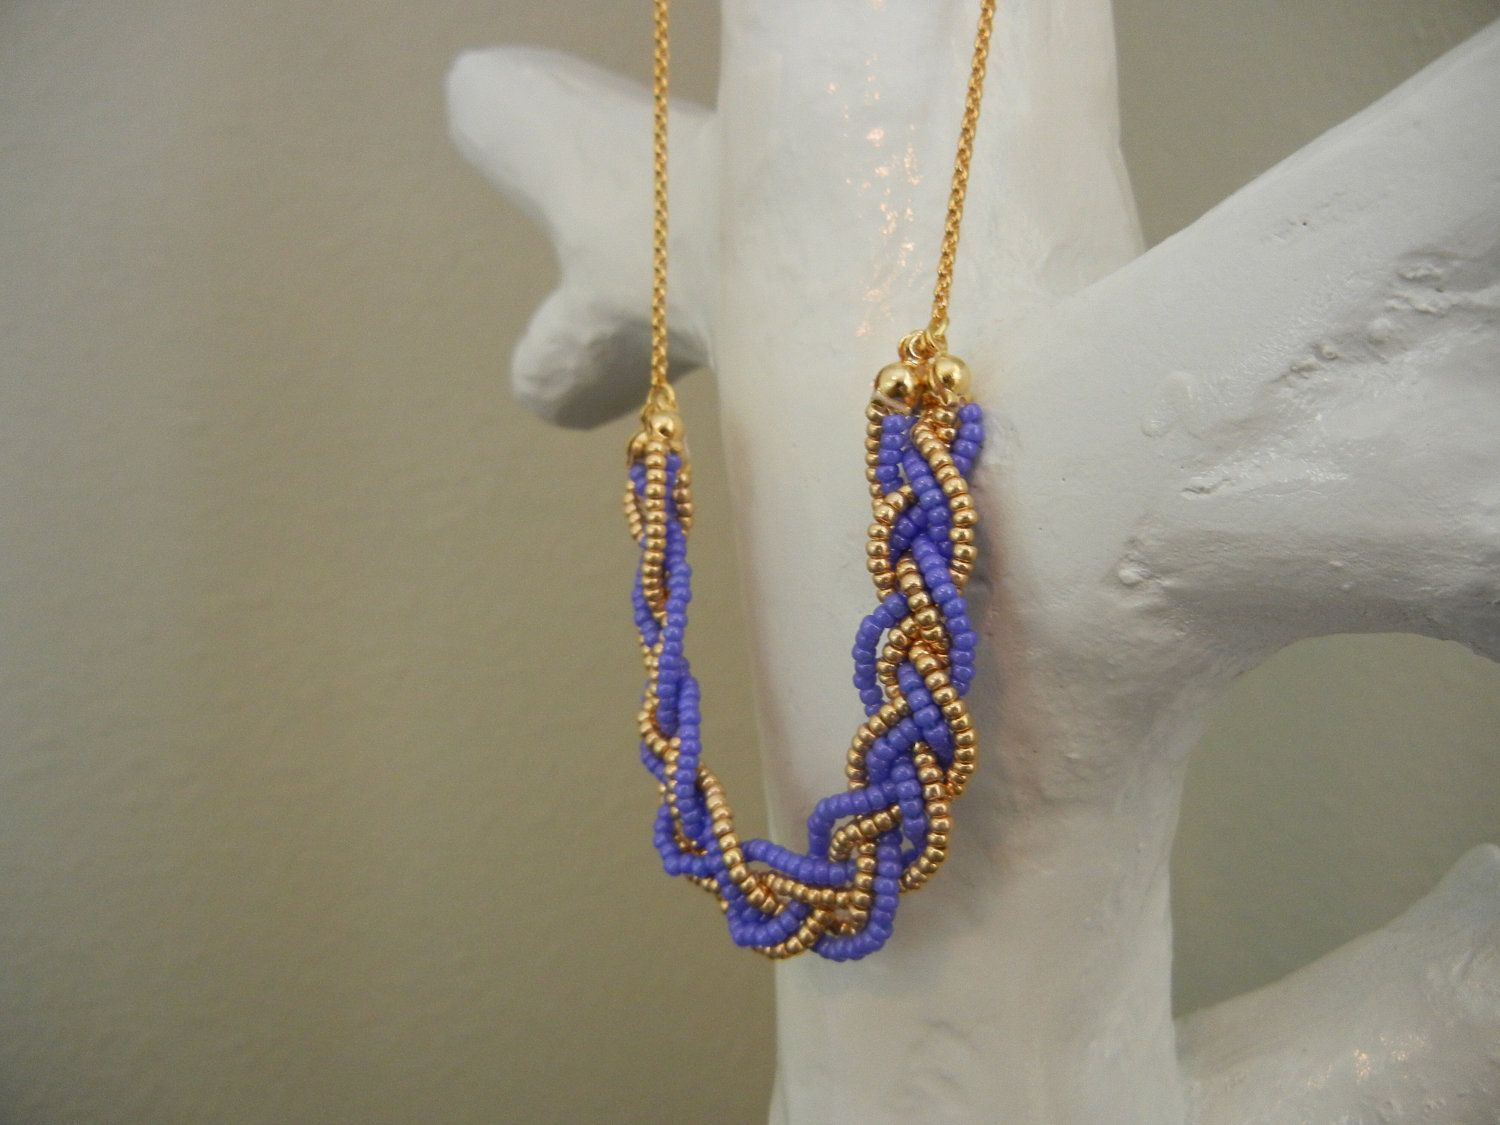 Purple & Gold Braided Necklace Love Braided necklace